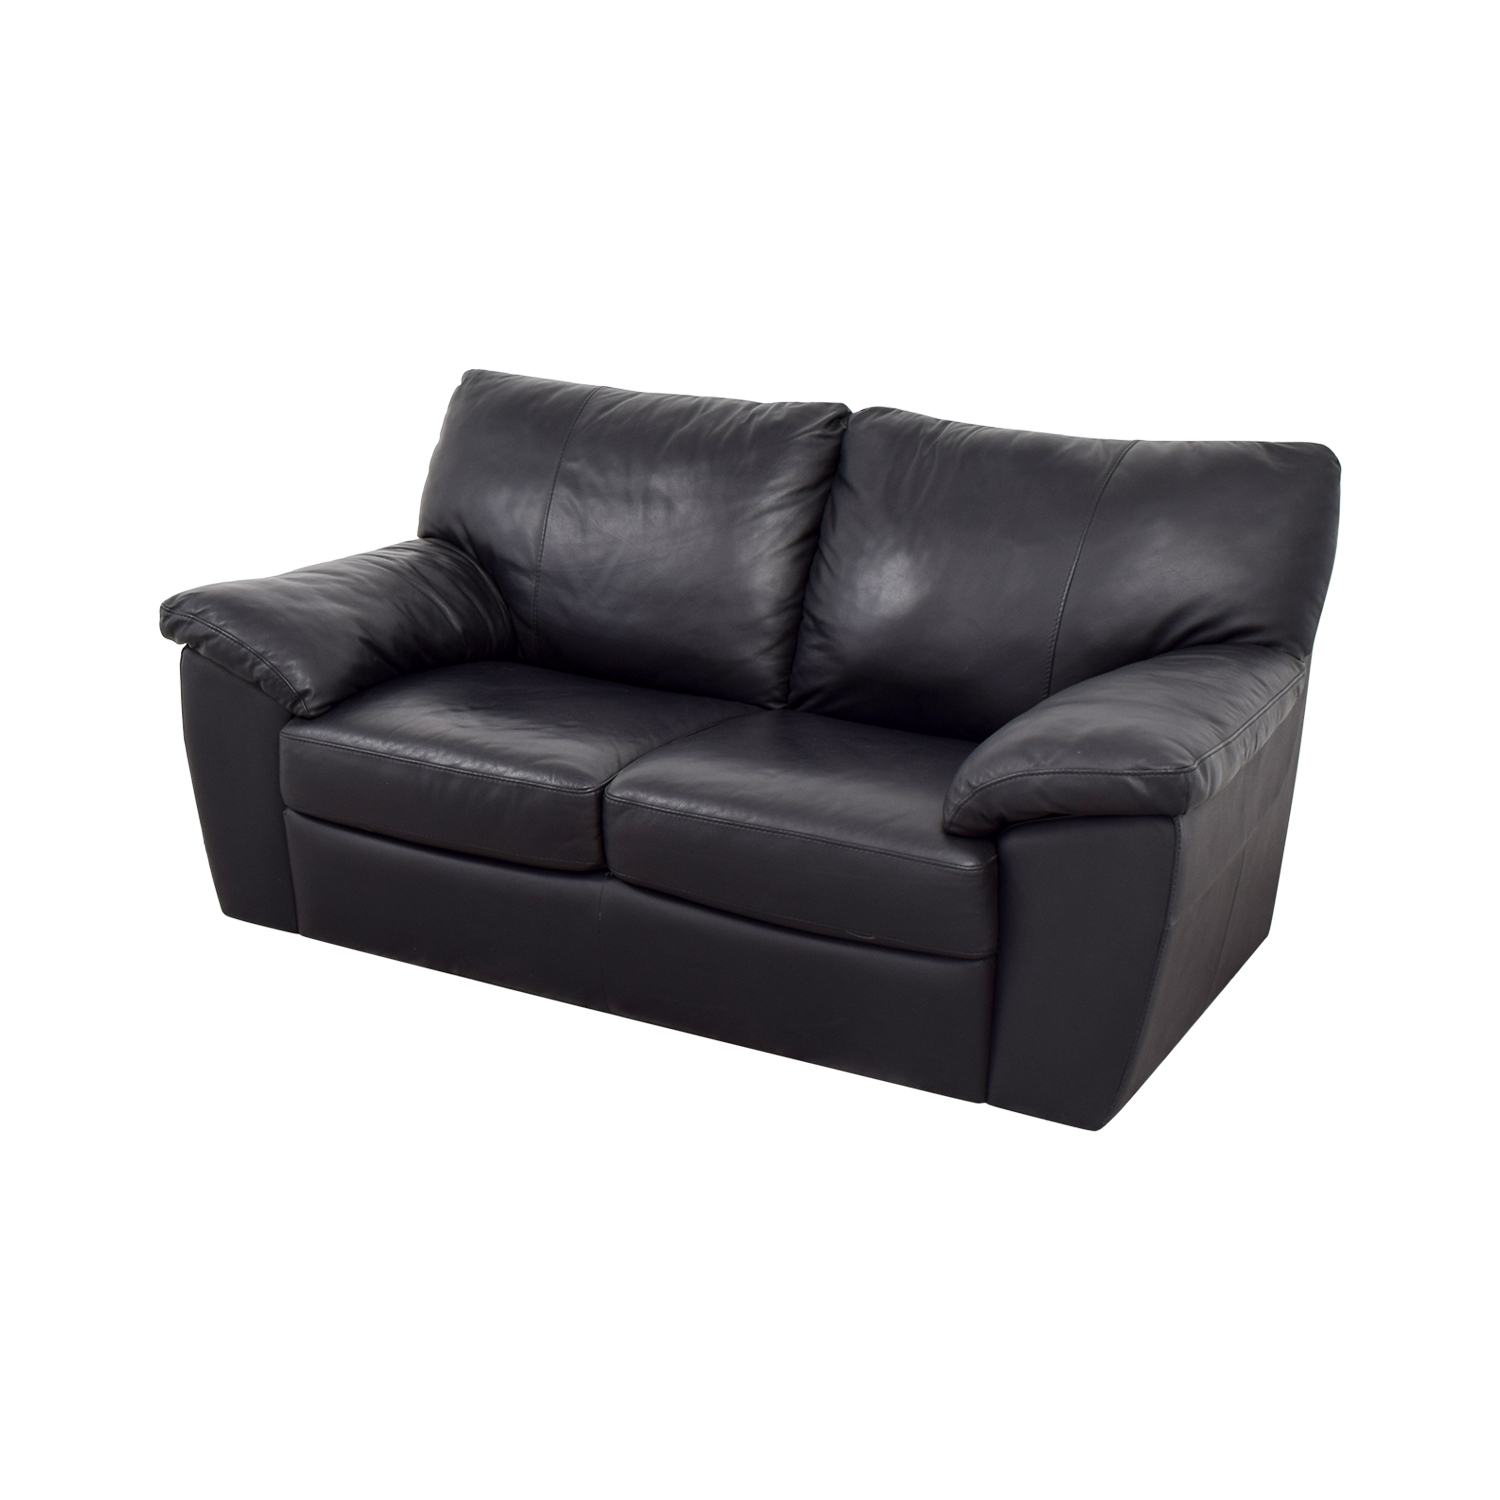 Ikea sofa leather stylish ikea leather sofa best ideas for Ikea sofa set